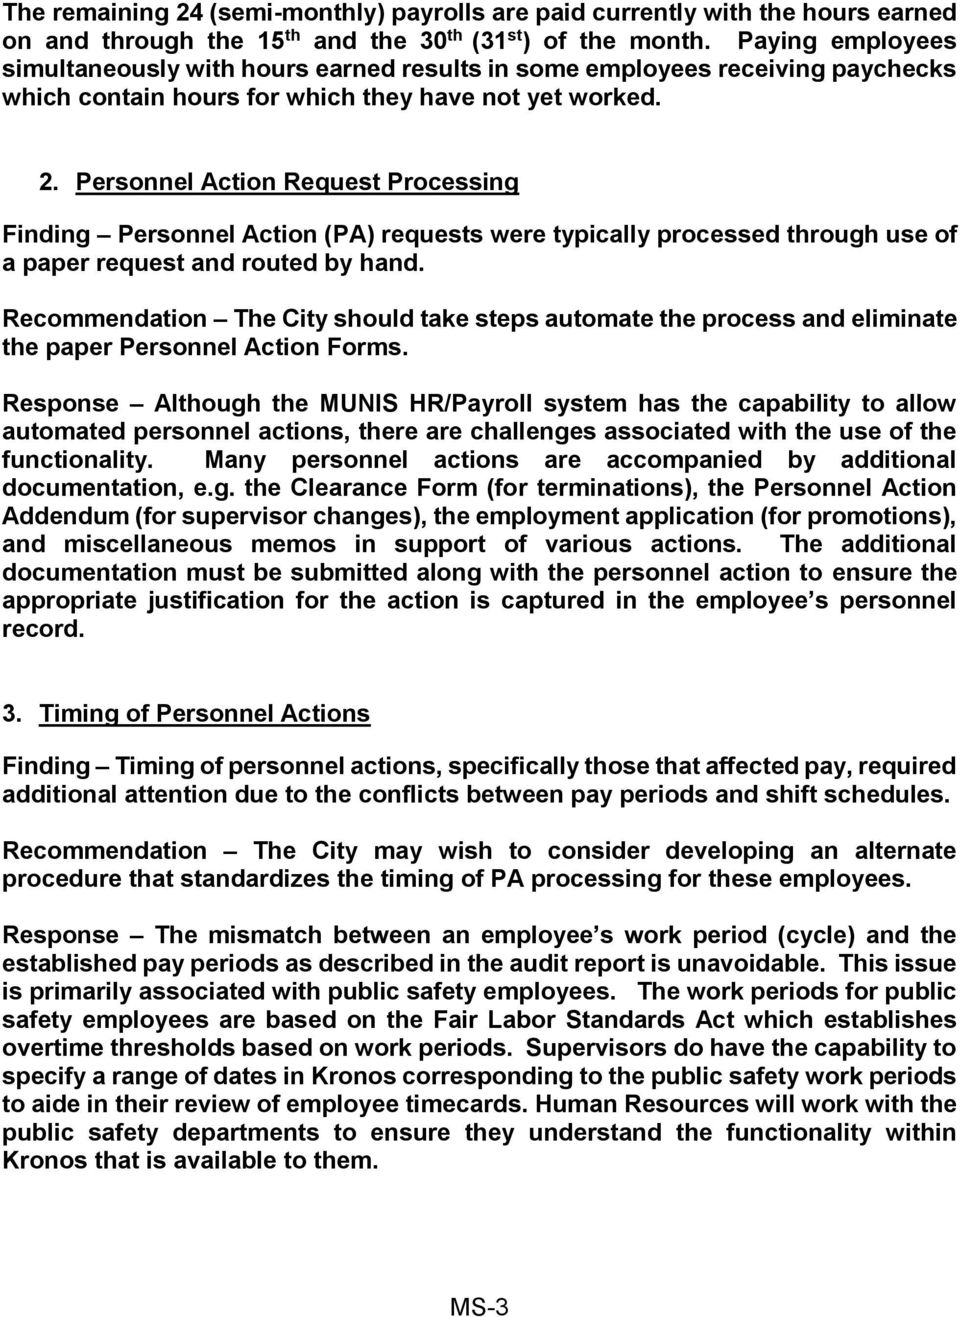 Personnel Action Request Processing Finding Personnel Action (PA) requests were typically processed through use of a paper request and routed by hand.